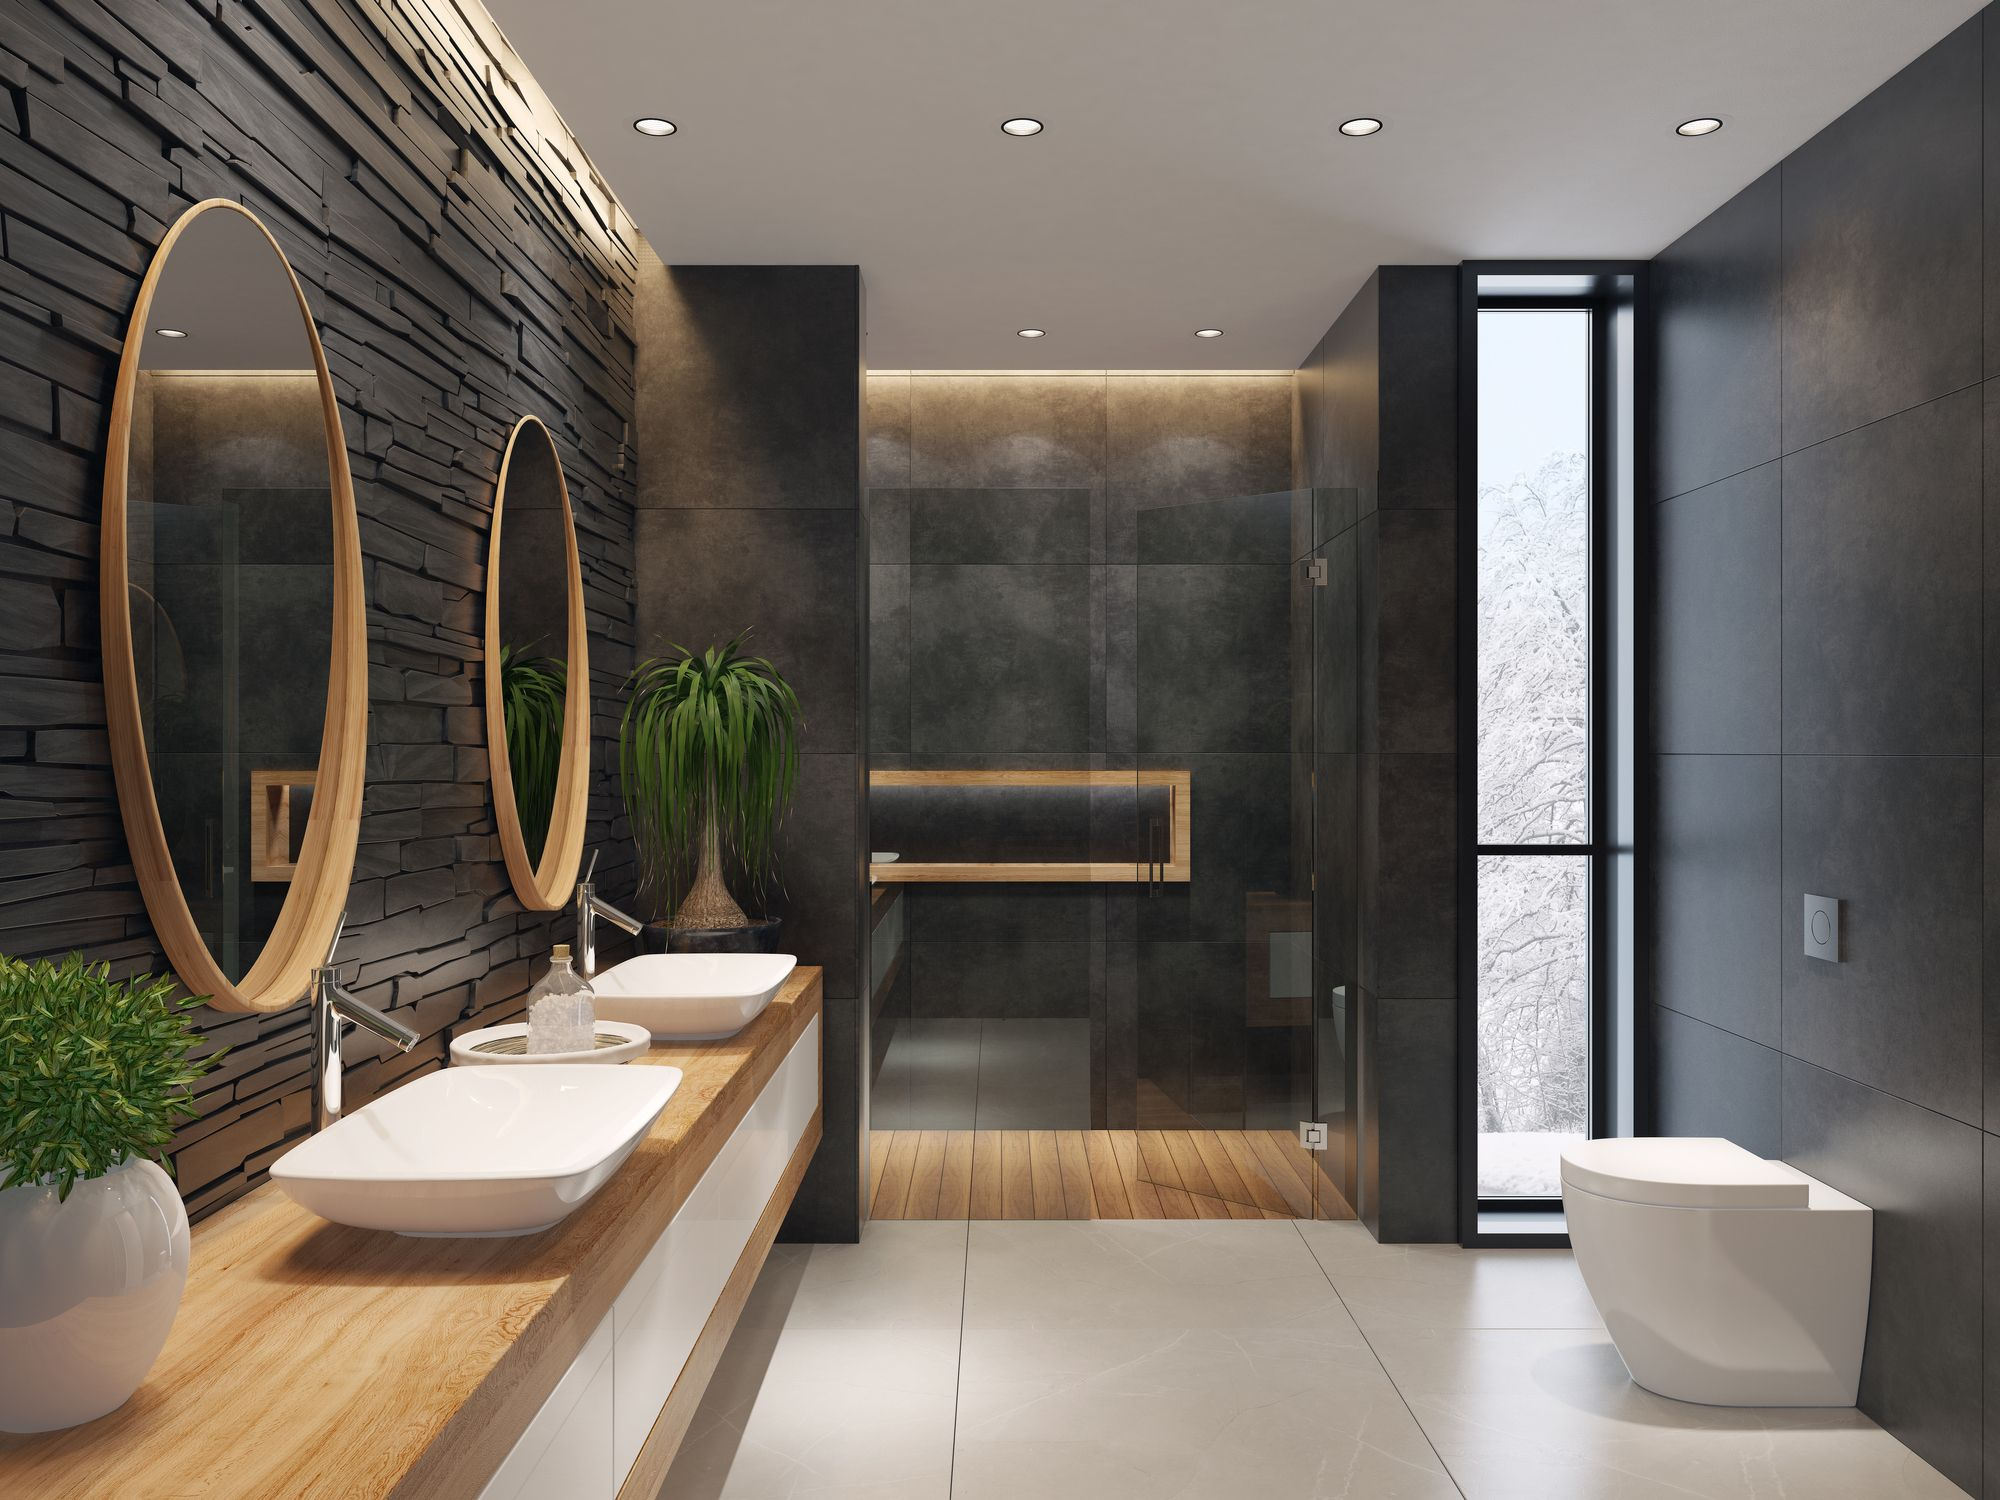 COVID-19 and Restroom Care | Hotel Cleaning Services